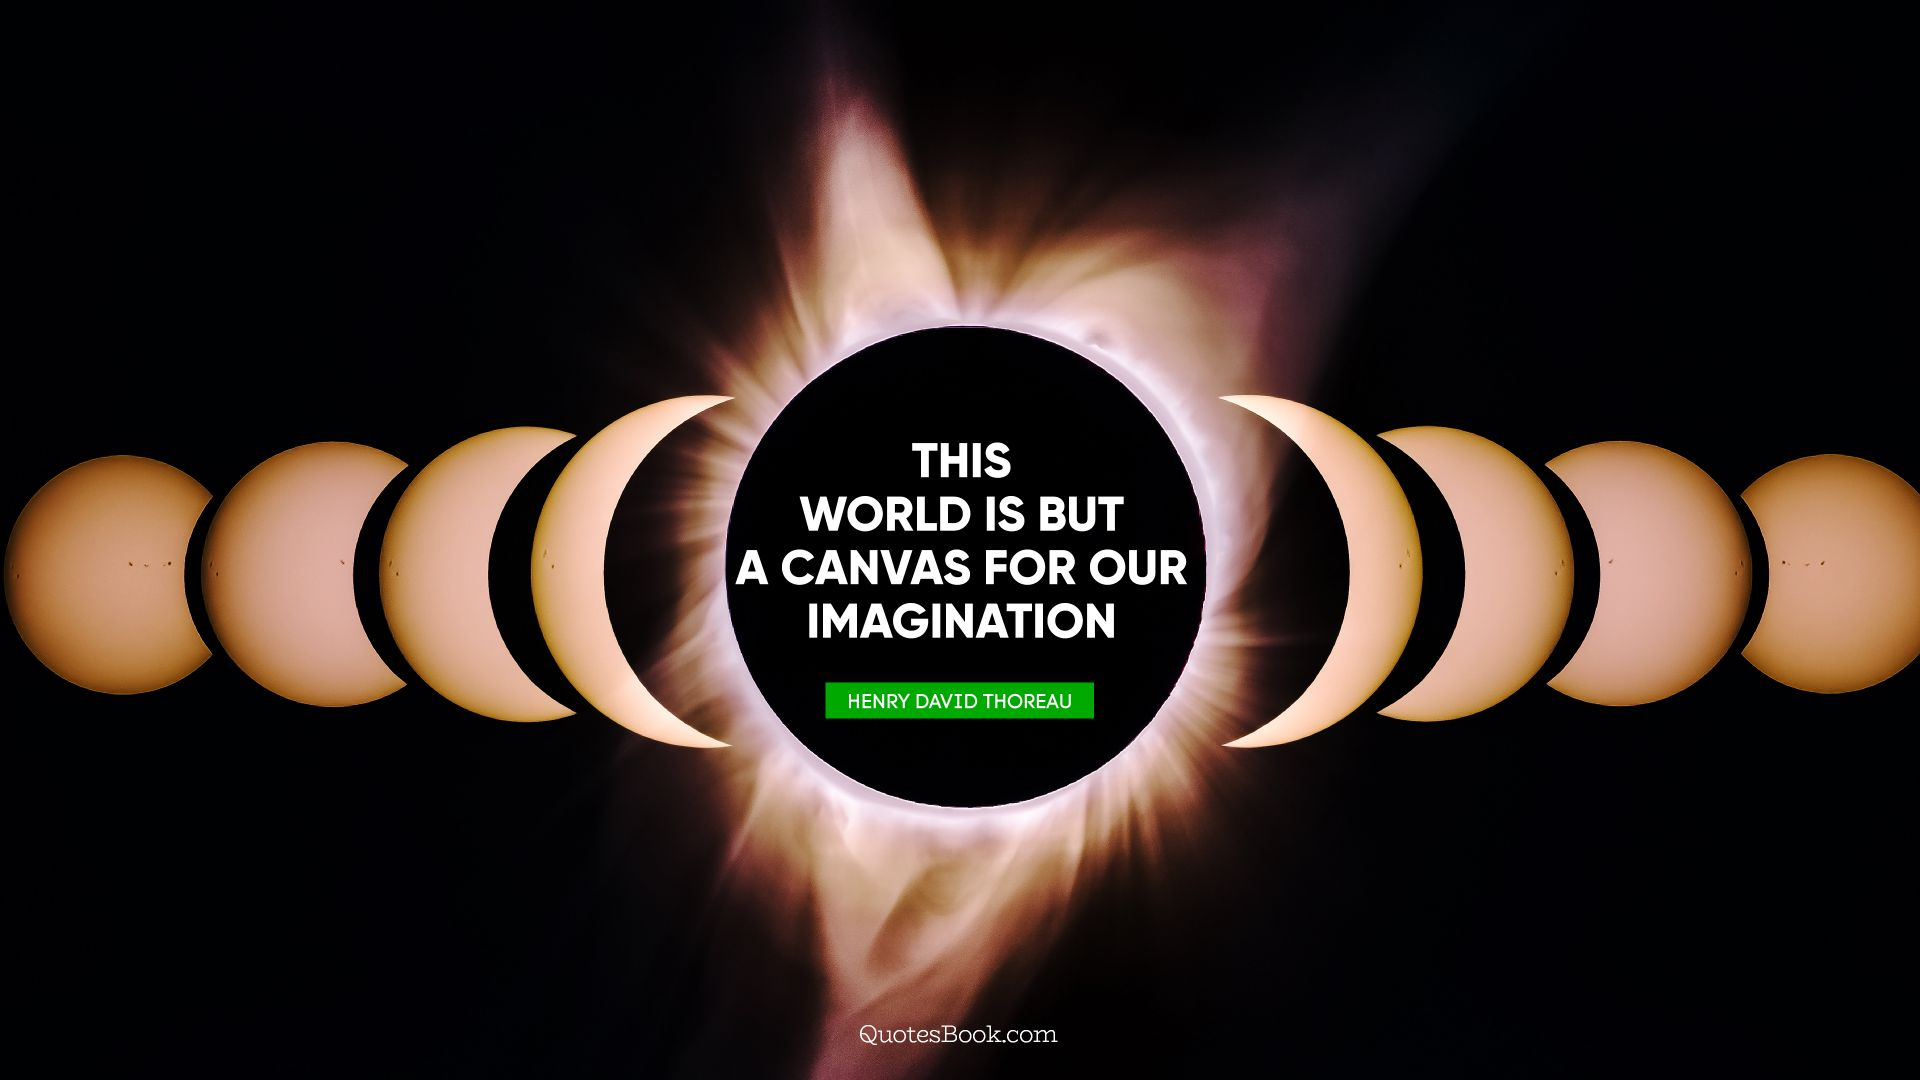 This world is but a canvas for our imagination. - Quote by Henry David Thoreau